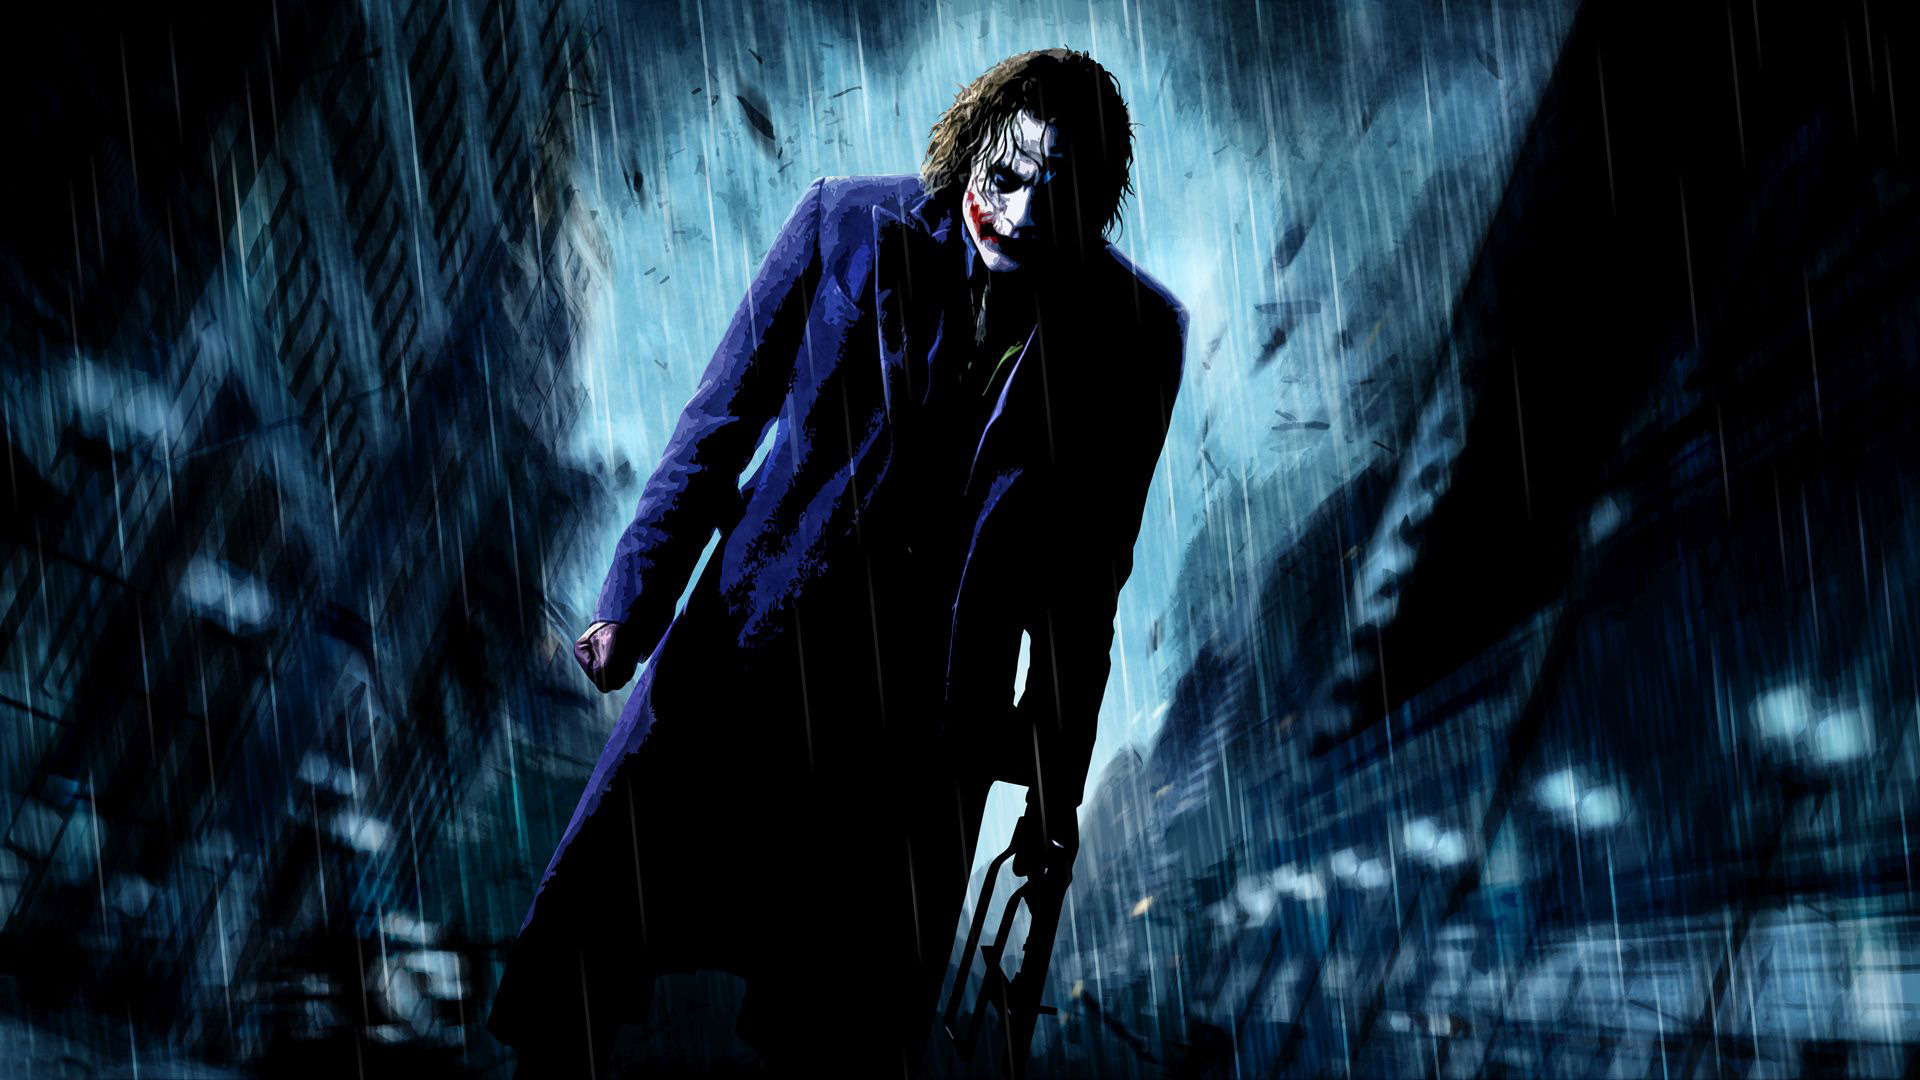 Joker Dark Knight Wallpaper - WallpaperSafari